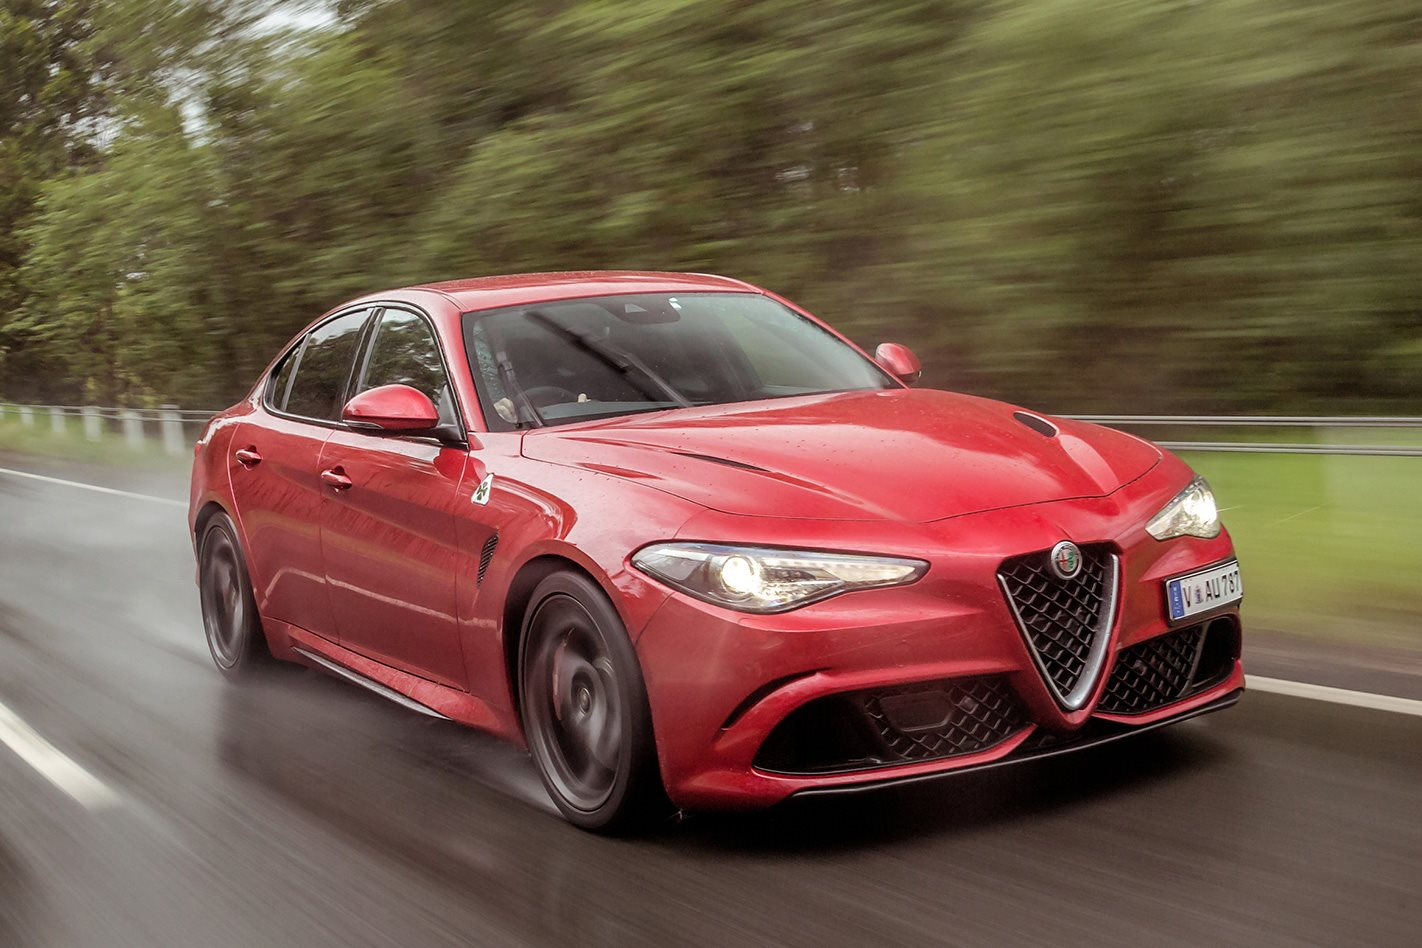 2017 alfa romeo giulia qv review price and specs motor. Black Bedroom Furniture Sets. Home Design Ideas